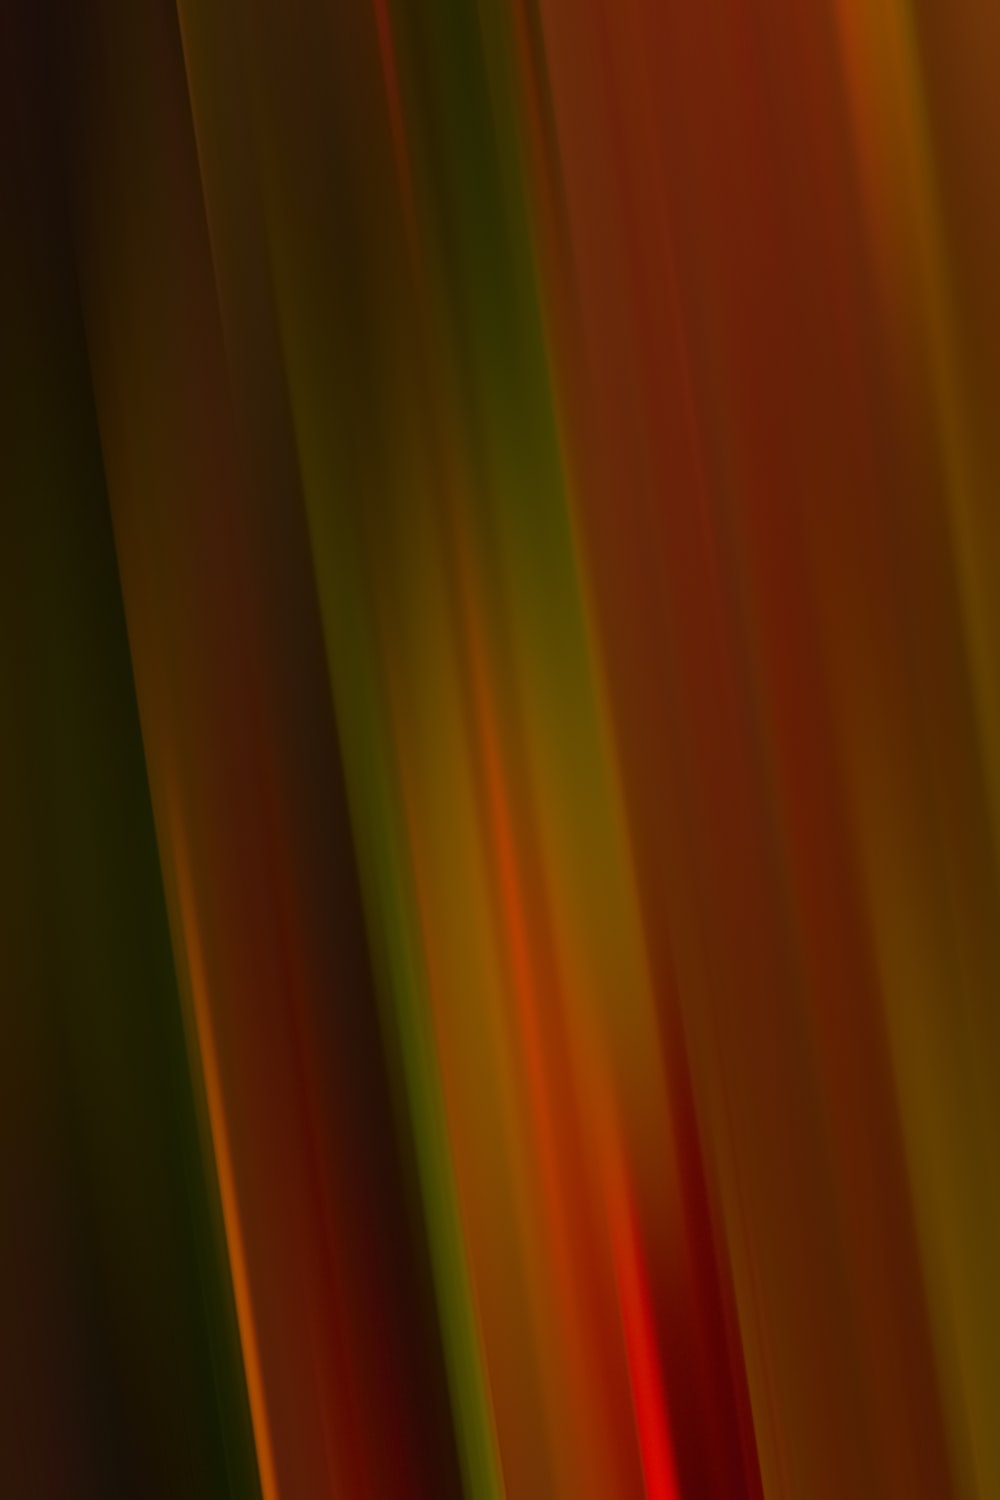 red green and yellow striped textile